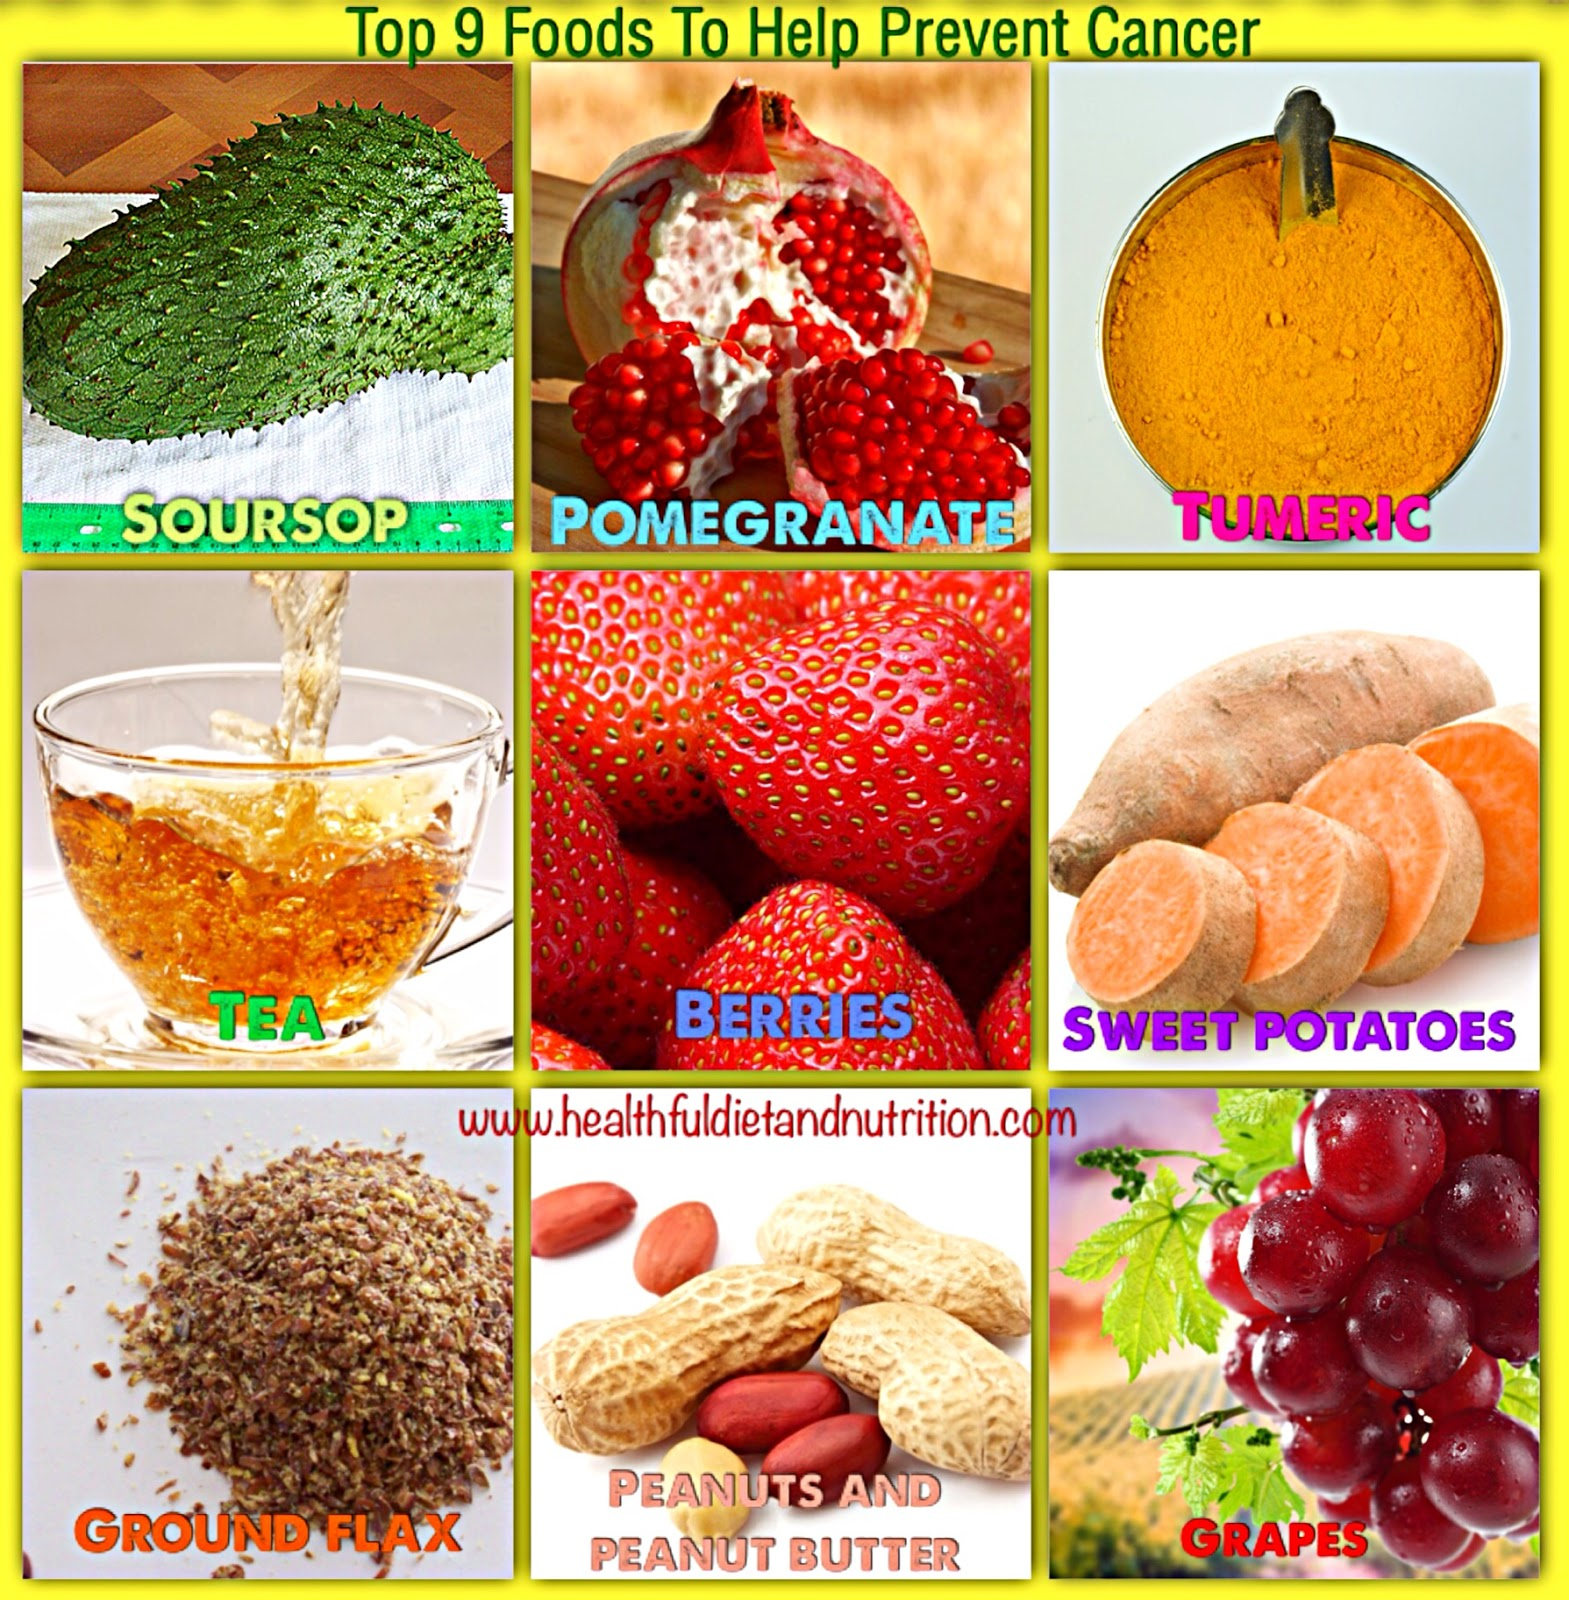 Top Foods To Eat For Optimum Health